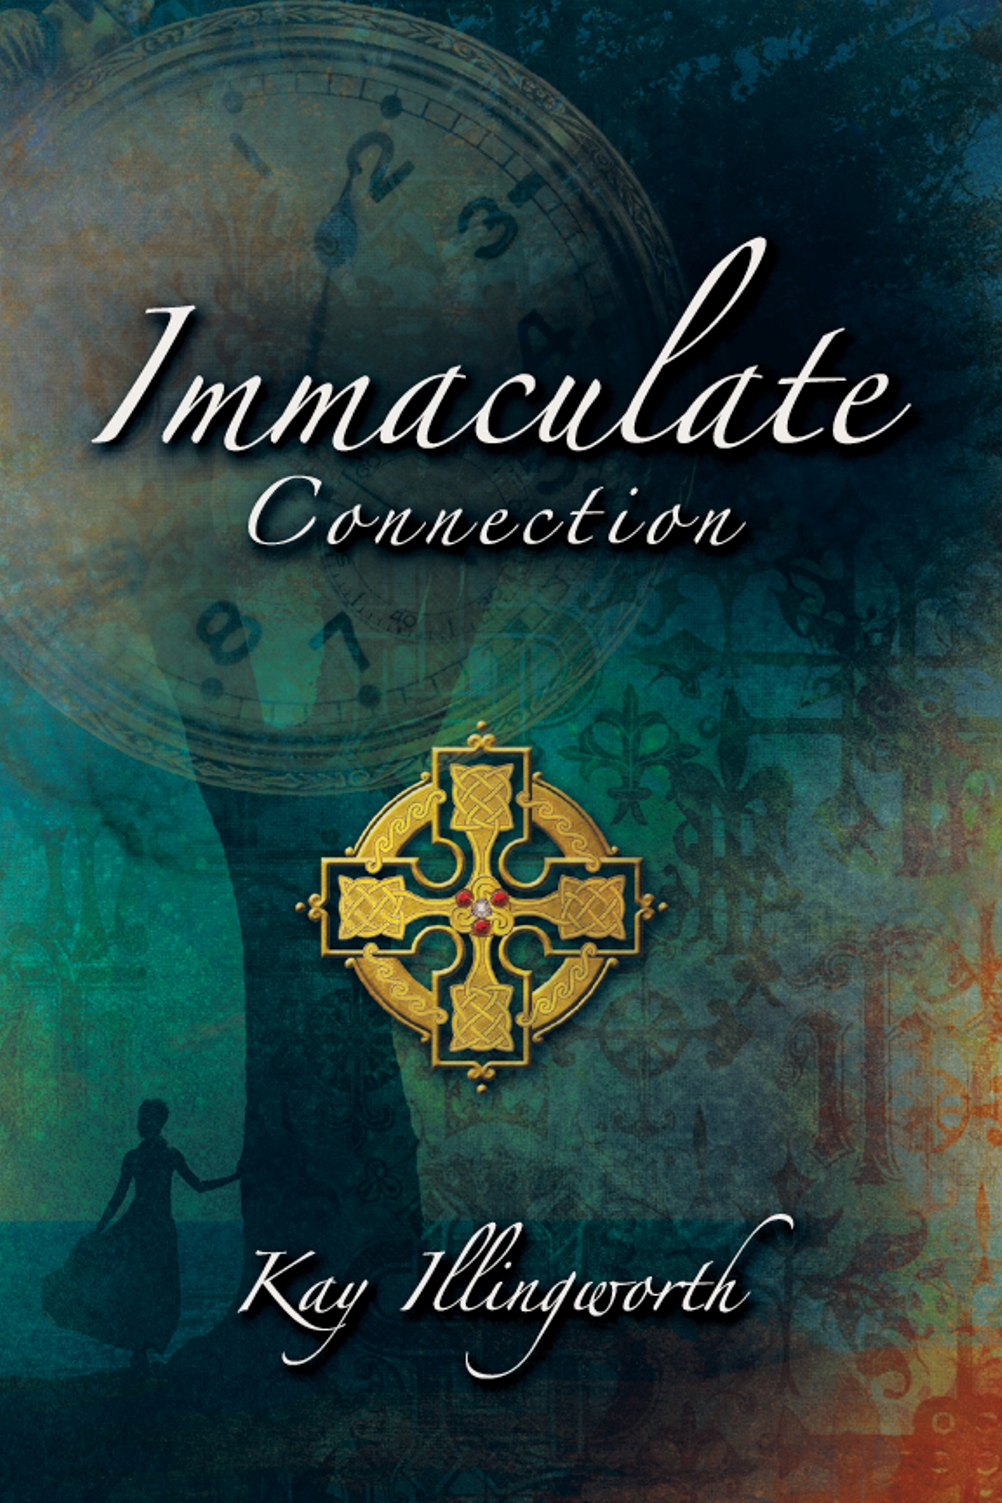 Immaculate Connection By: Kay Illingworth